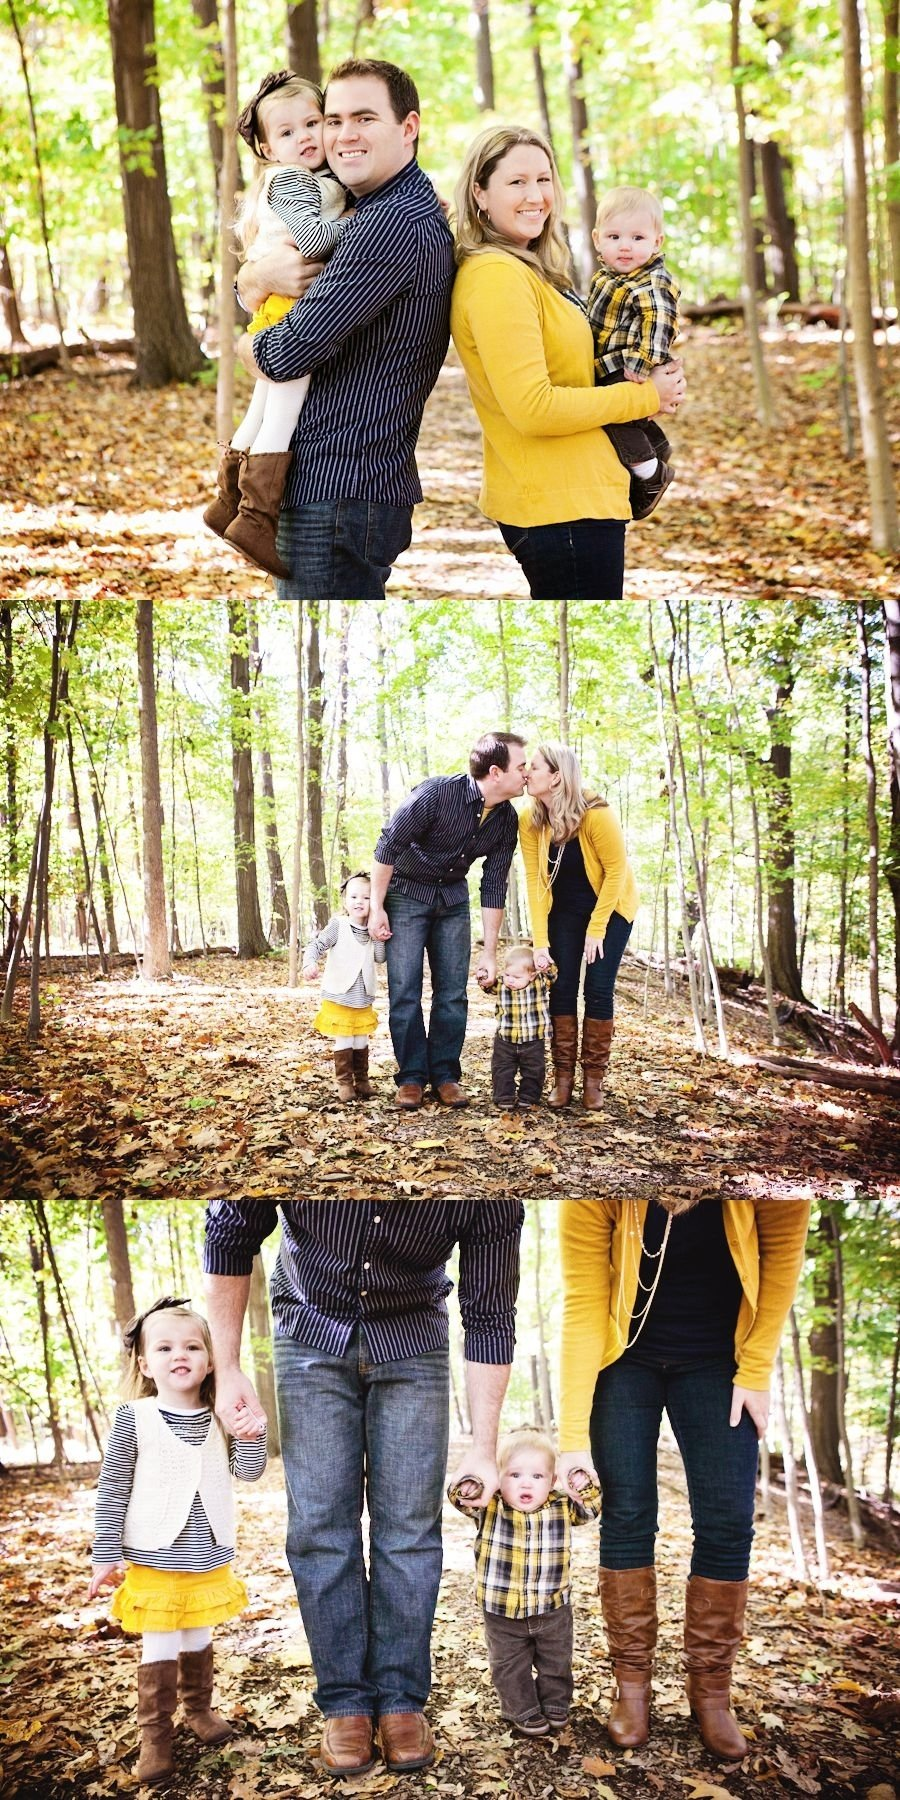 10 Awesome Outfit Ideas For Family Pictures awesome example of great outfit coordination not matching for